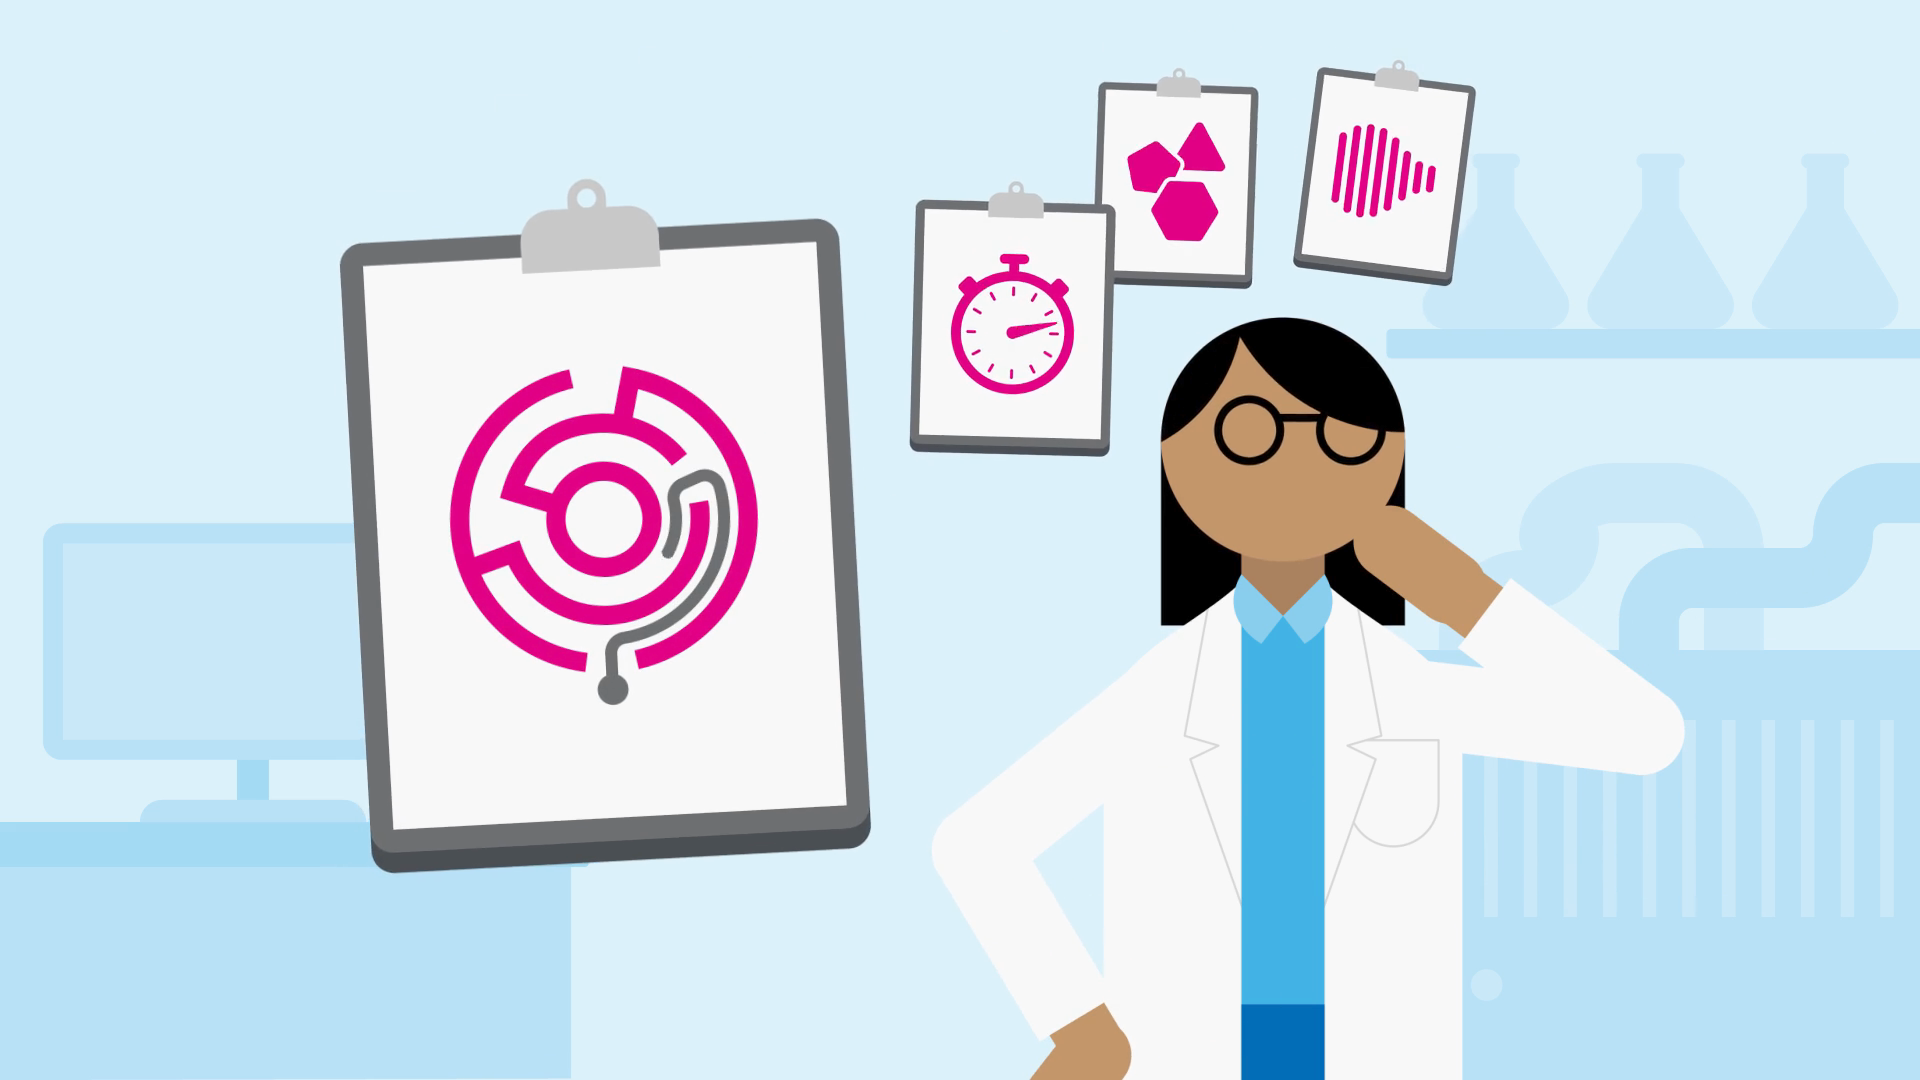 medical animation explainer 2D scientist and icons on clip boards showing a maze, stopwatch, shapes and graph